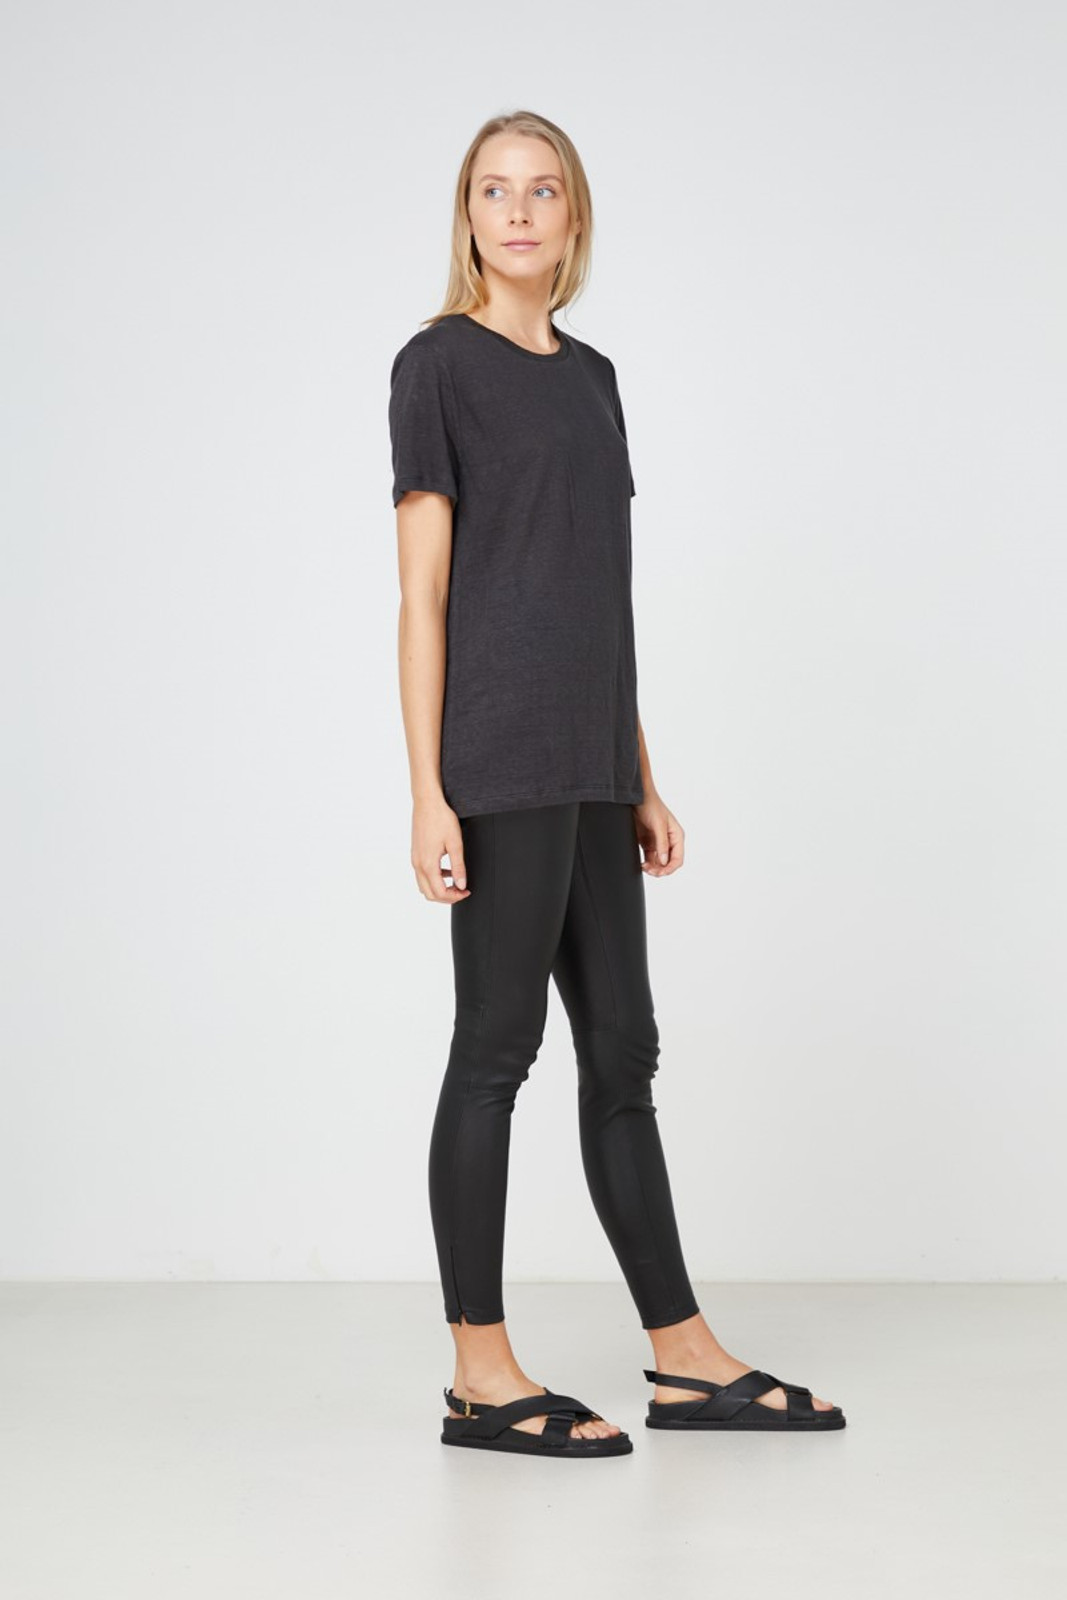 Elka Collective EC Linen Crew Neck Tee Black  4